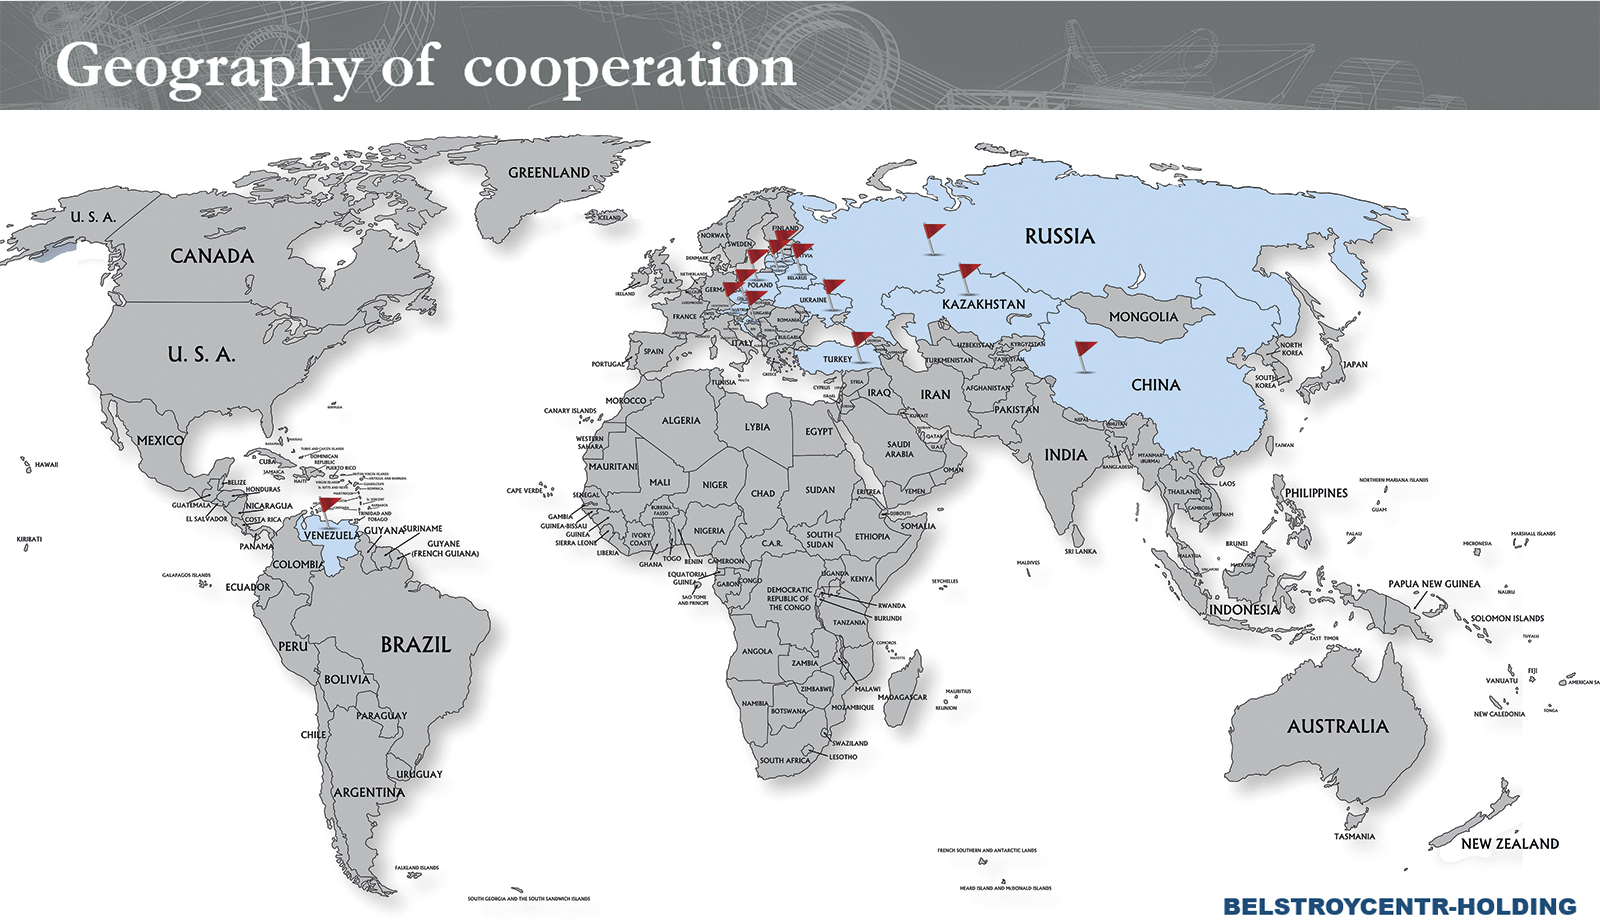 Geography of cooperation